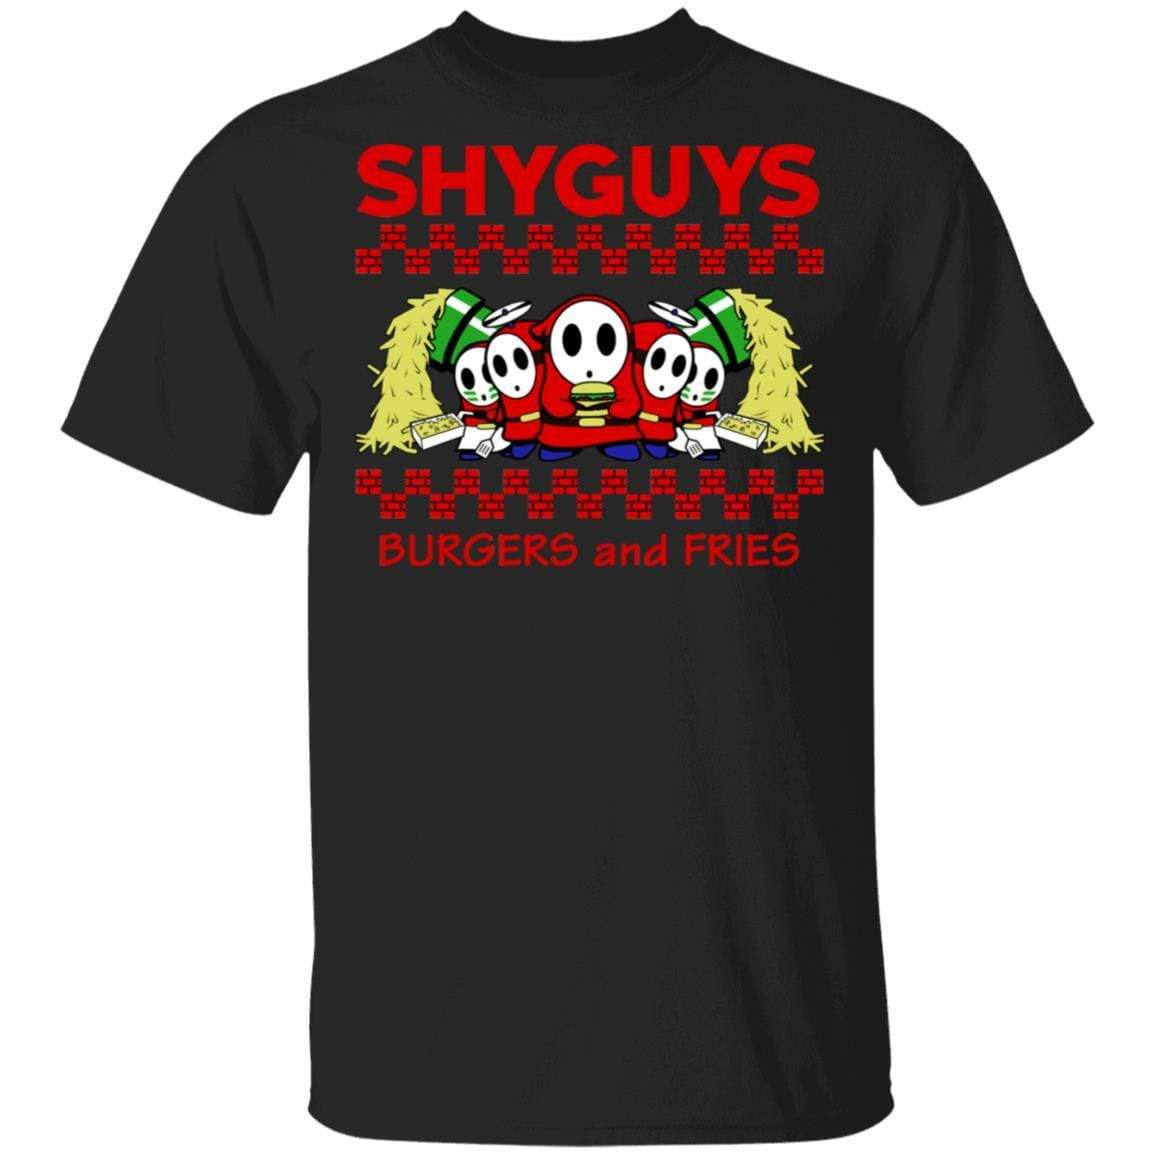 Shyguys Burgers And Fries T-Shirts, Hoodies 1049-9953-88064141-48144 - Tee Ript